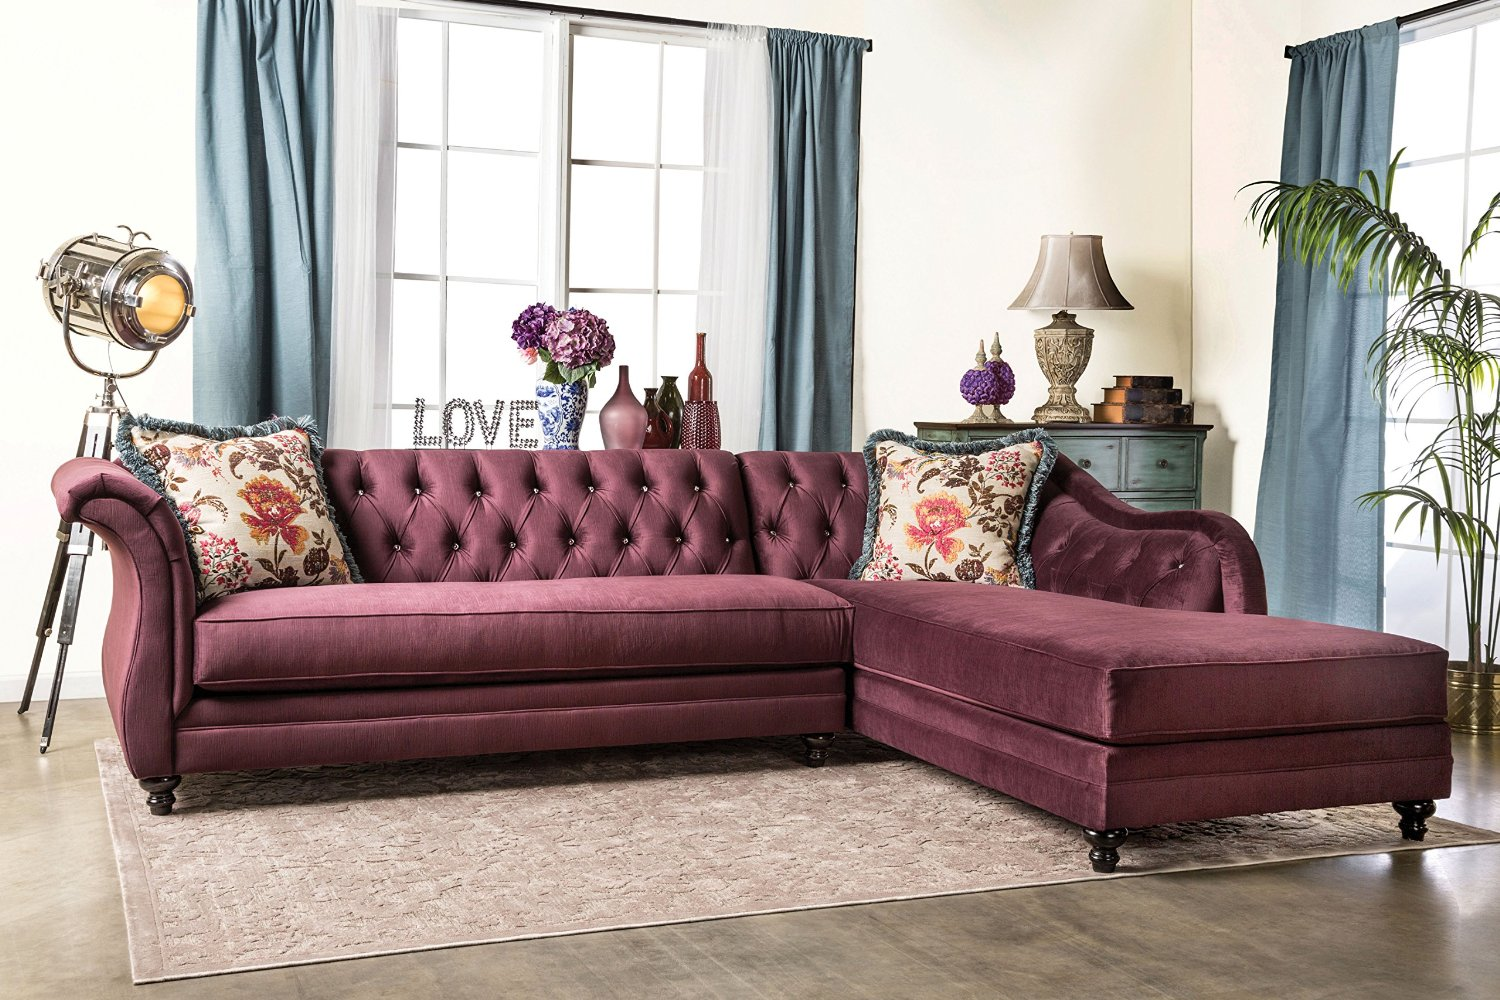 Chesterfield Suites 25 Best Chesterfield Sofas To Buy In 2019